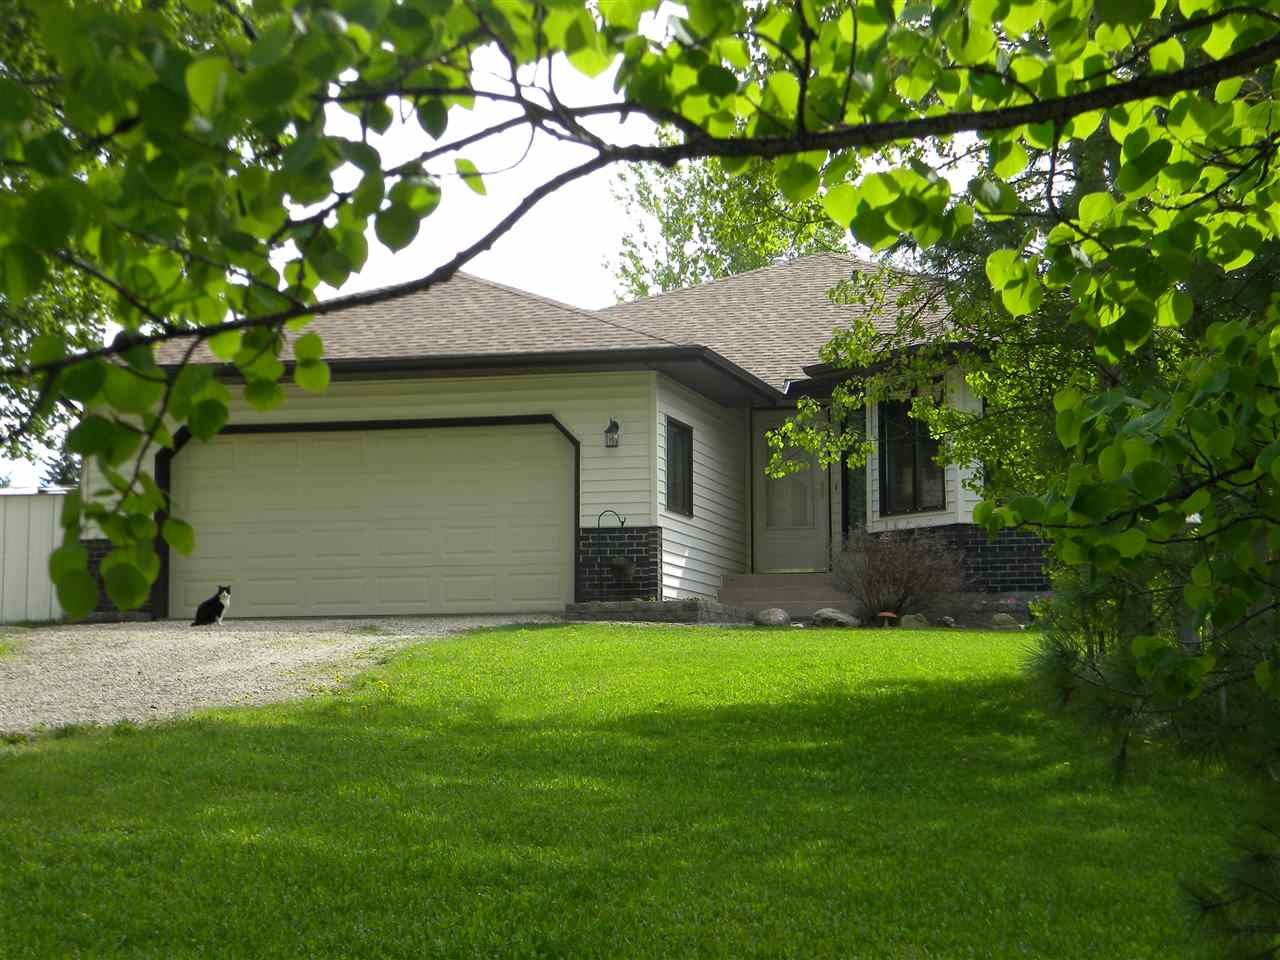 Main Photo: 102 53123 RGE RD 21: Rural Parkland County House for sale : MLS® # E4051821